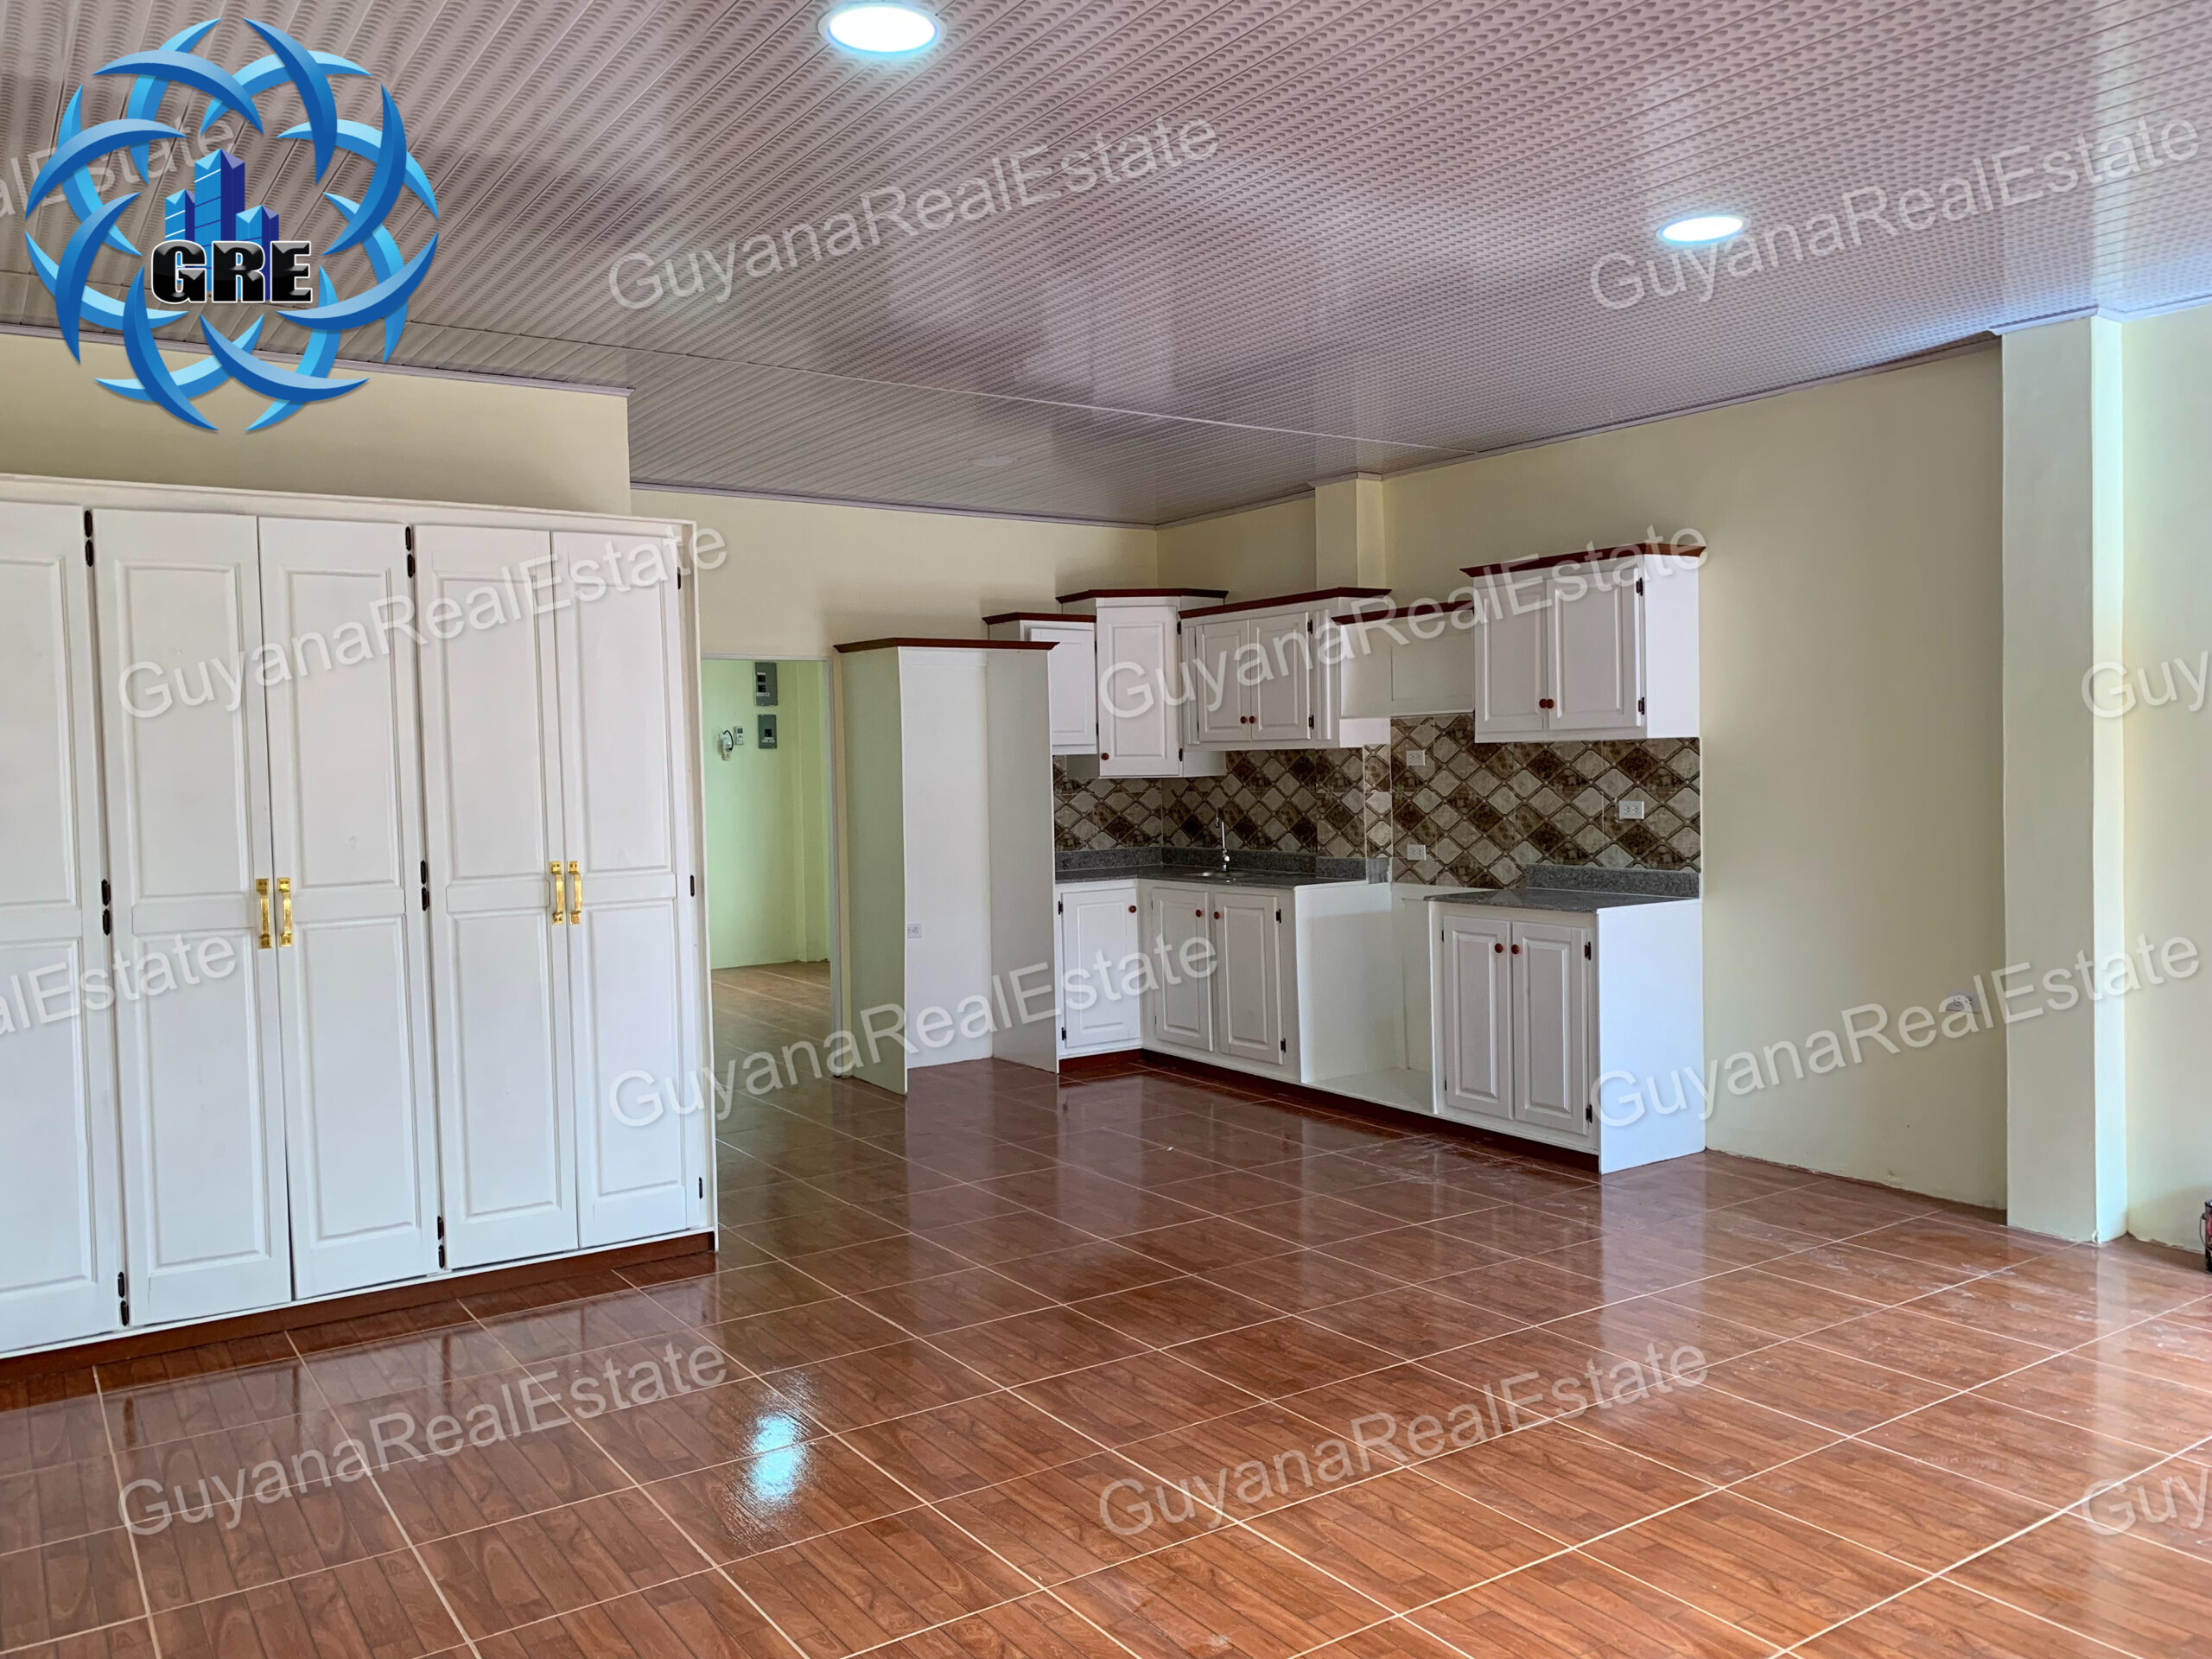 Unfurnished Apartment Units Available for Rental in Providence. (Apartment Building)